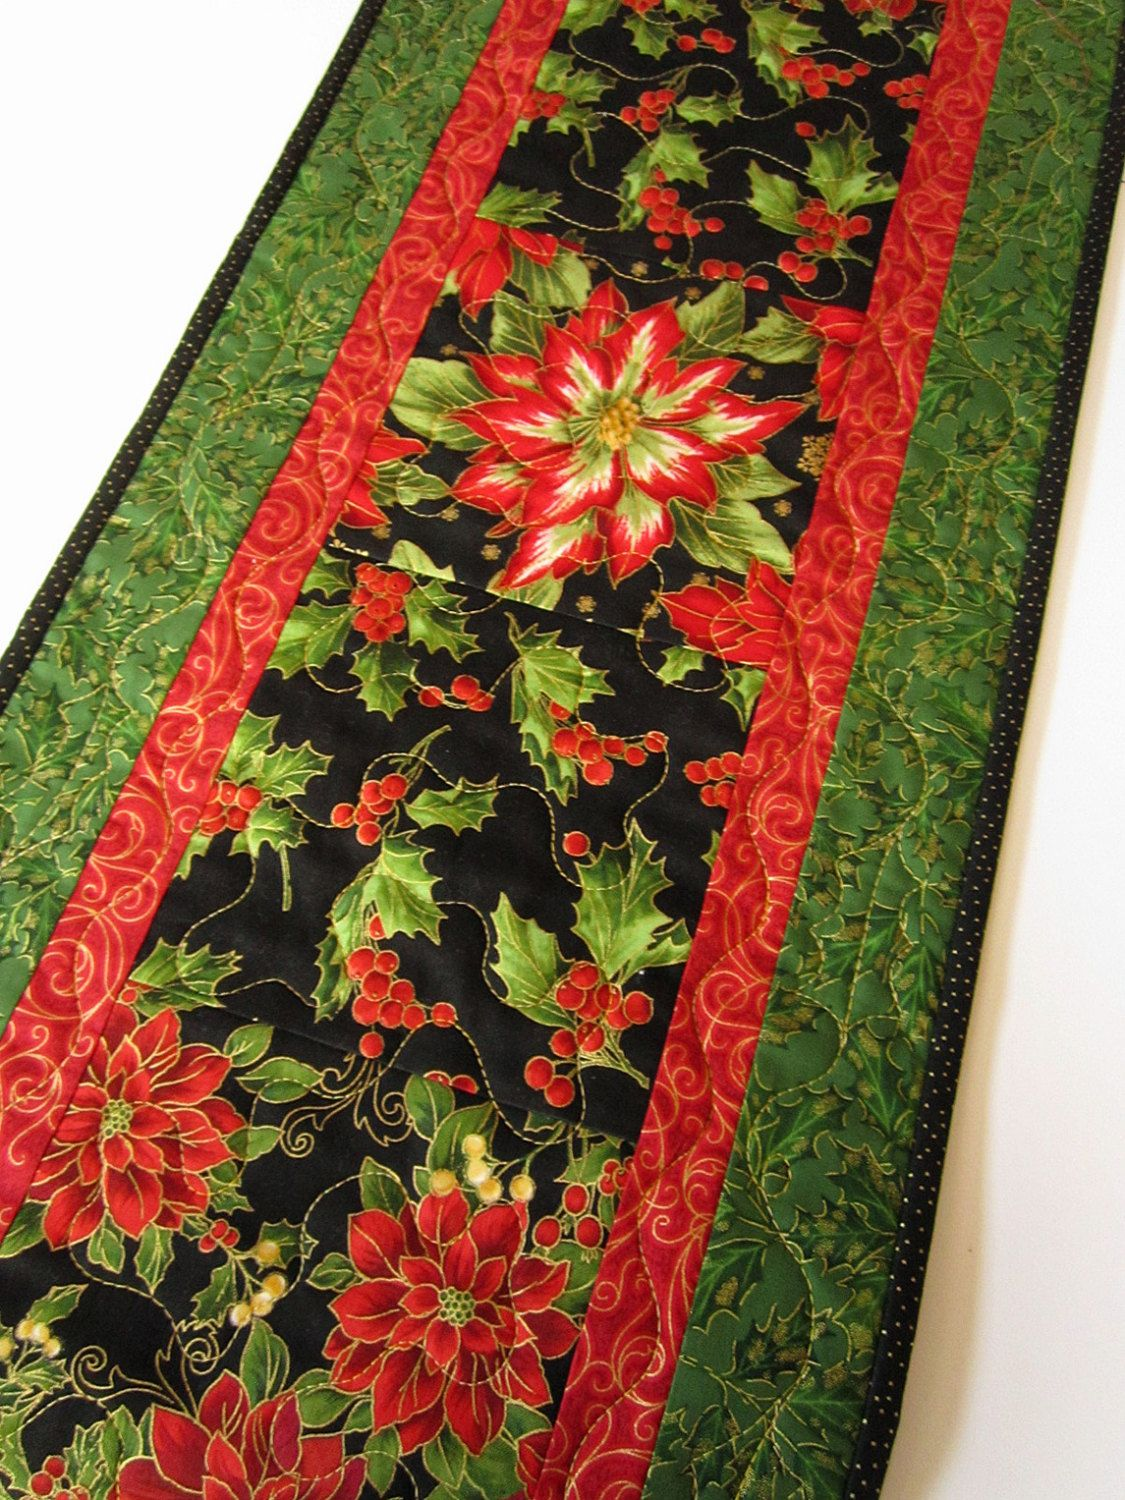 Christmas Poinsettia Handmade Table Runner Quilted Quilt